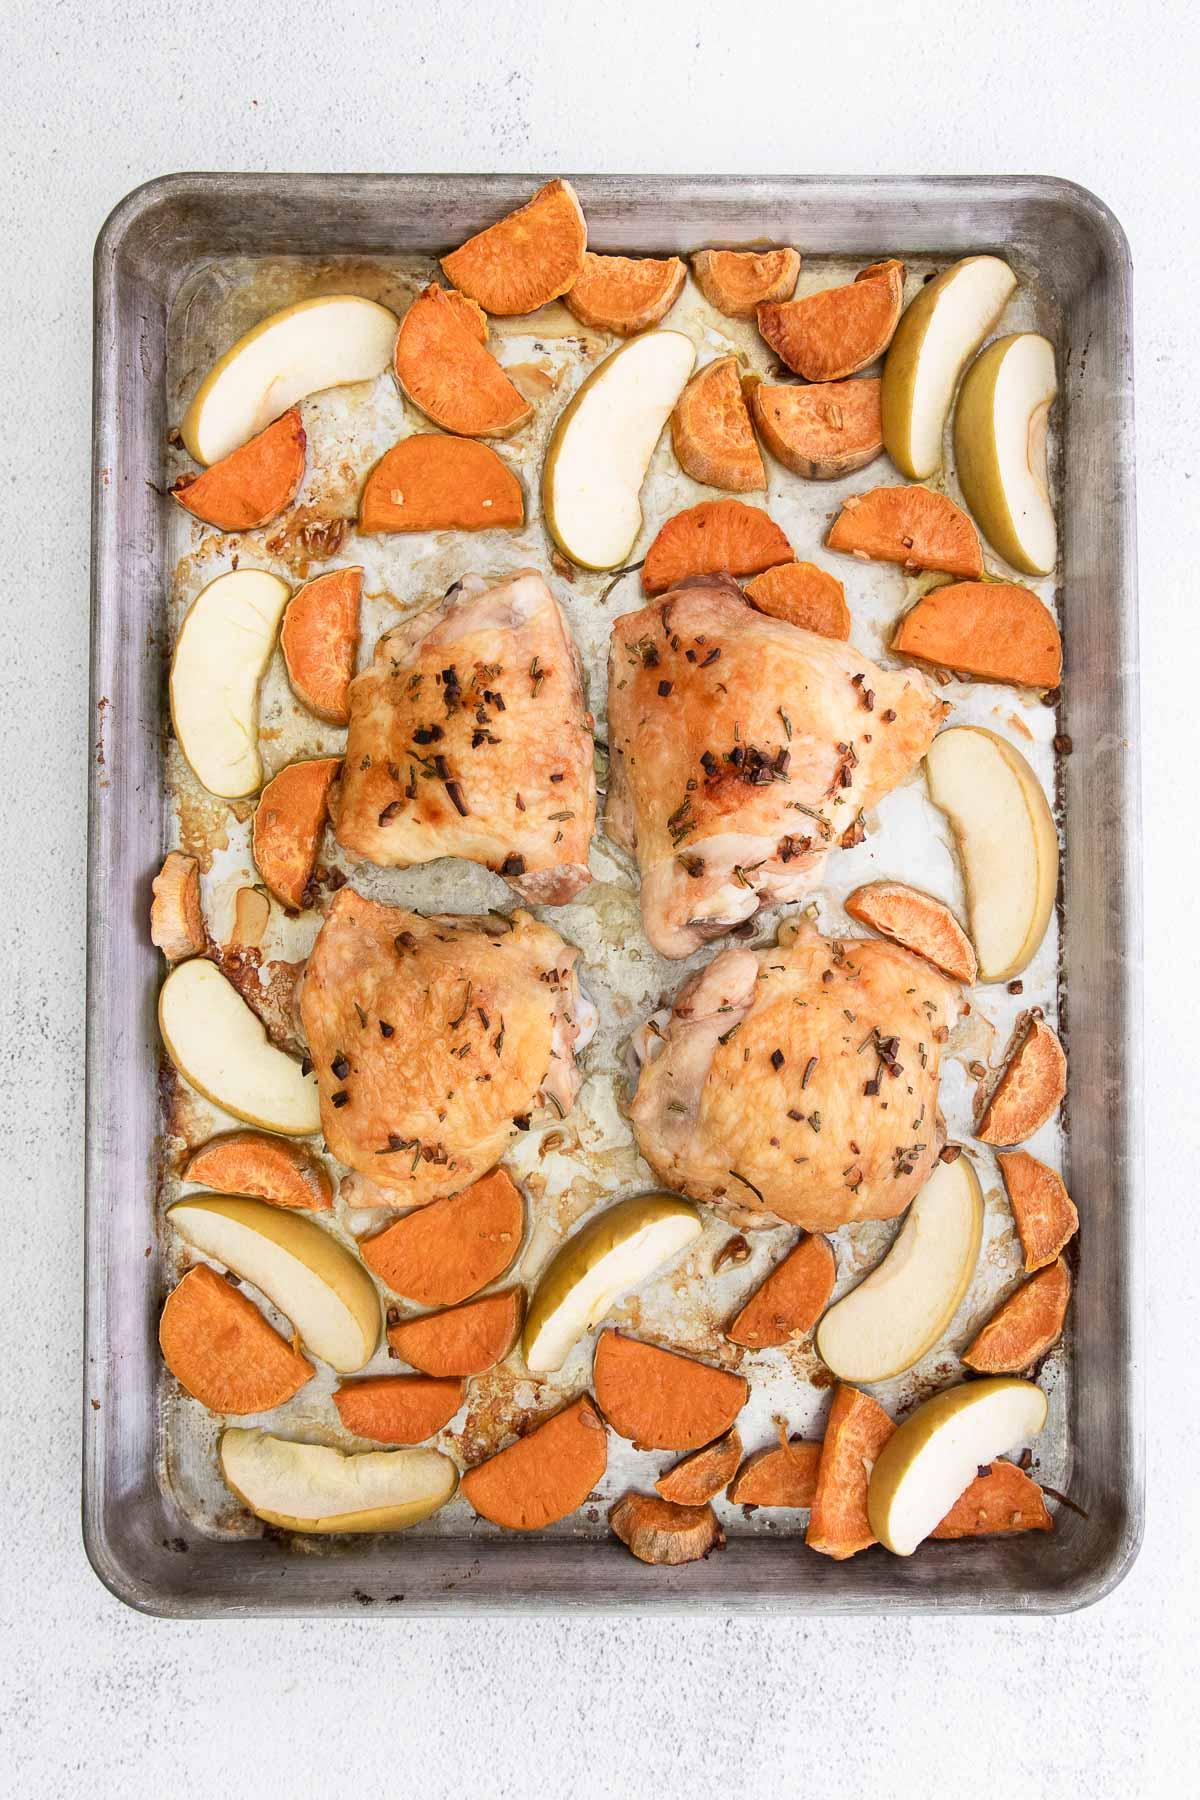 sheet pan with cooked chicken thighs, sweet potatoes and apples